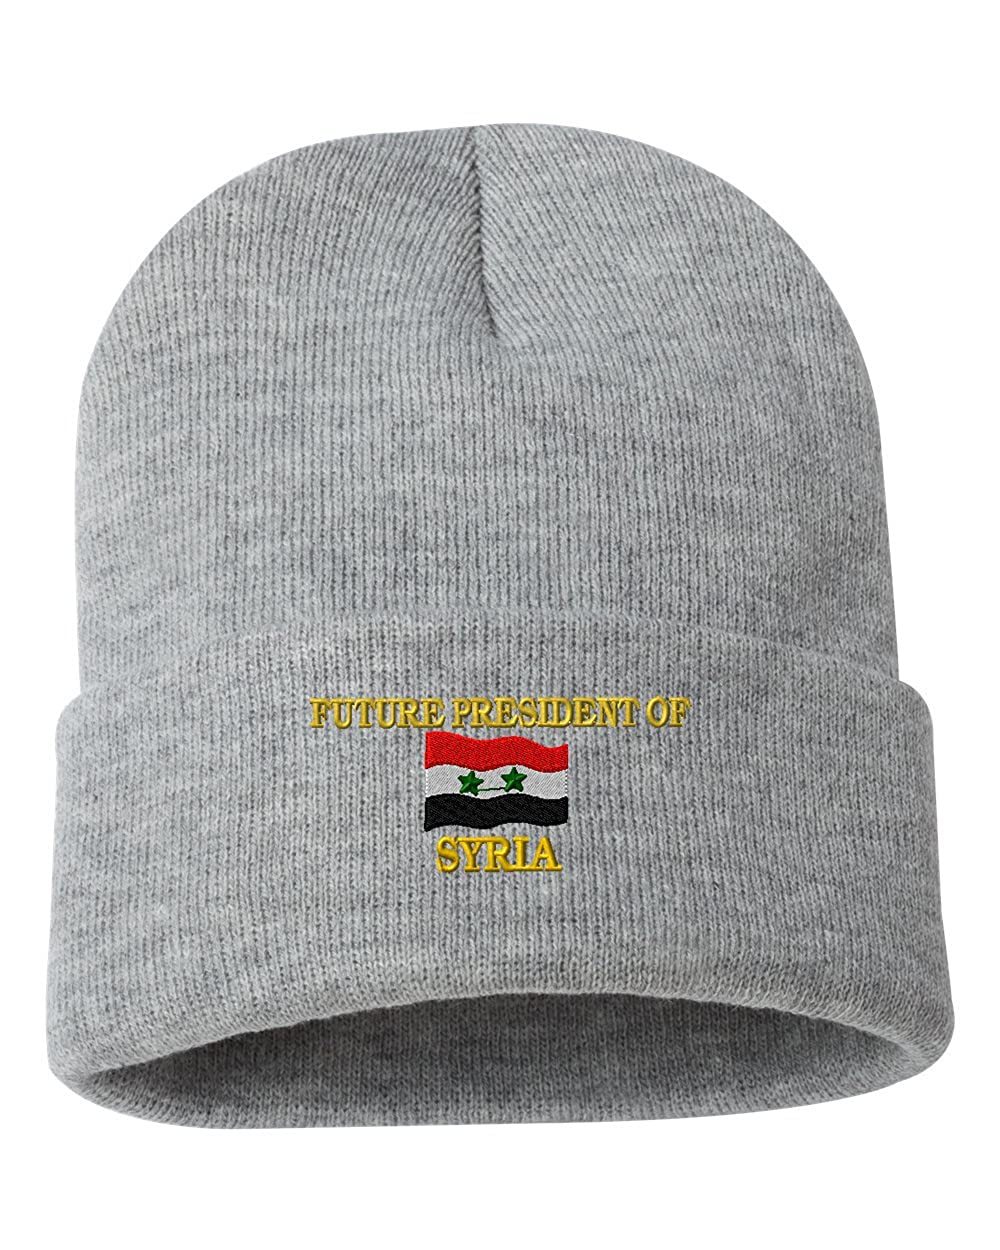 FUTURE PRESIDENT OF SYRIA Custom Personalized Embroidery Embroidered Beanie